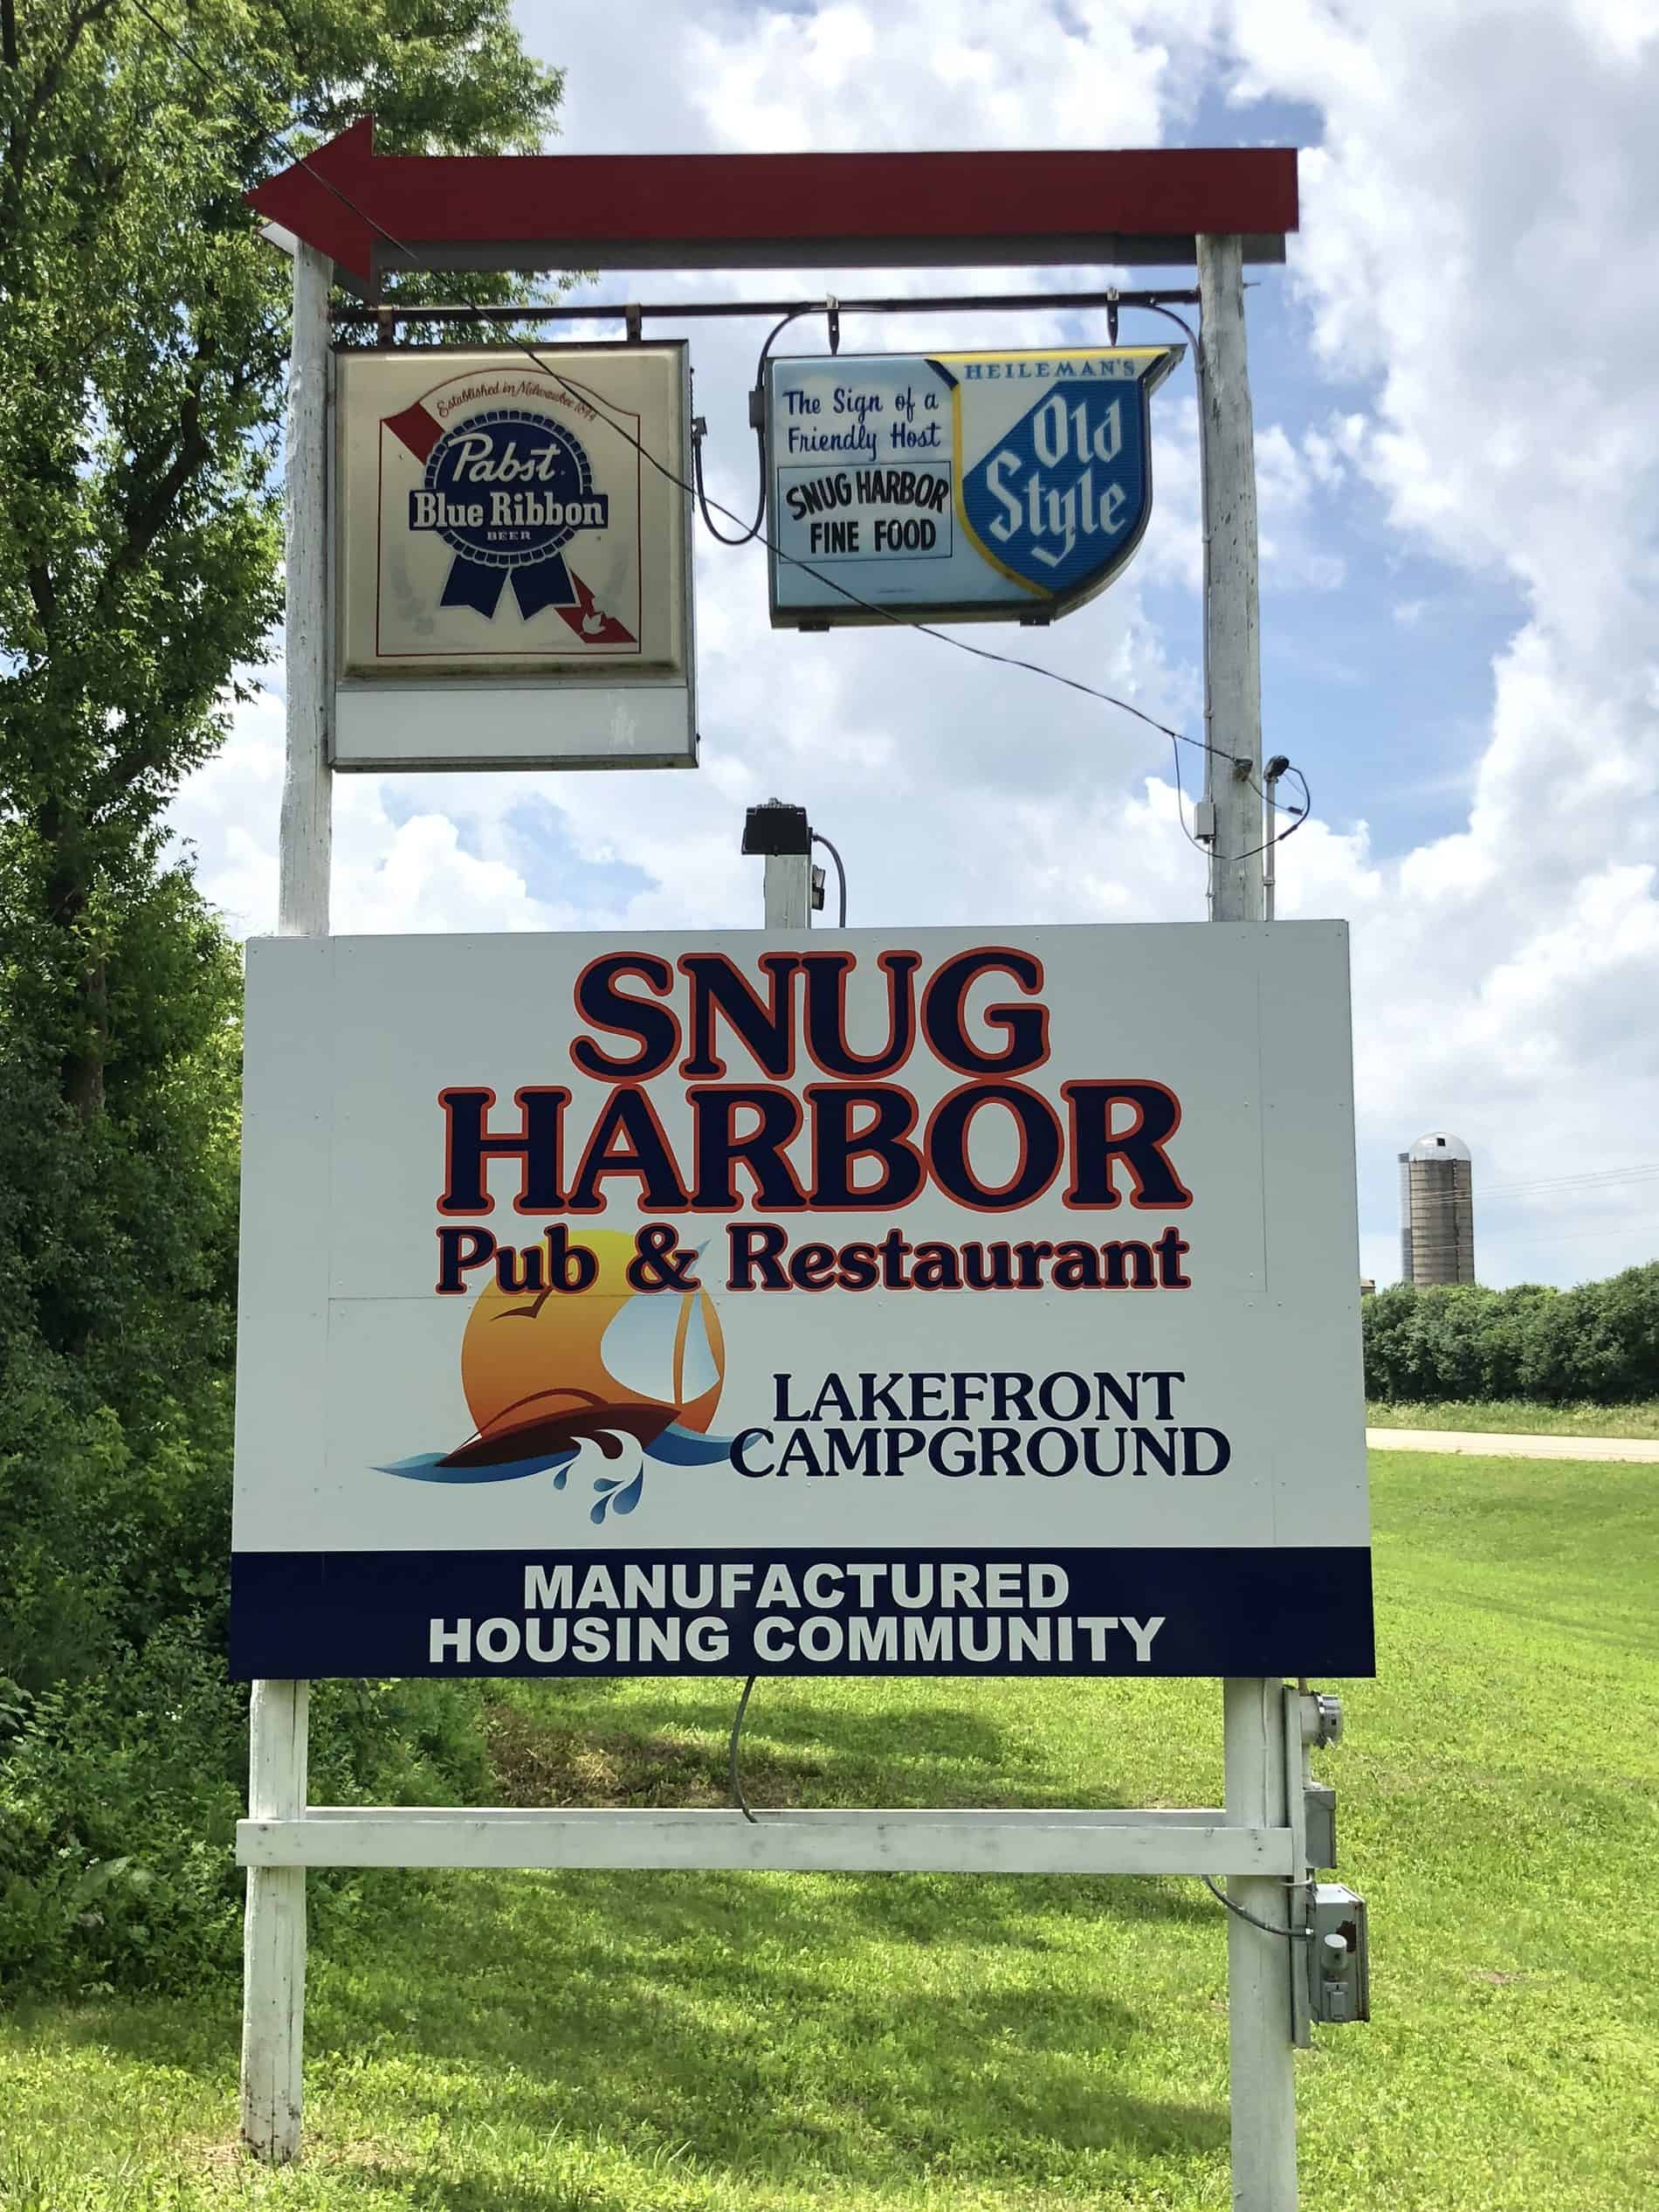 Snug Harbor Campground